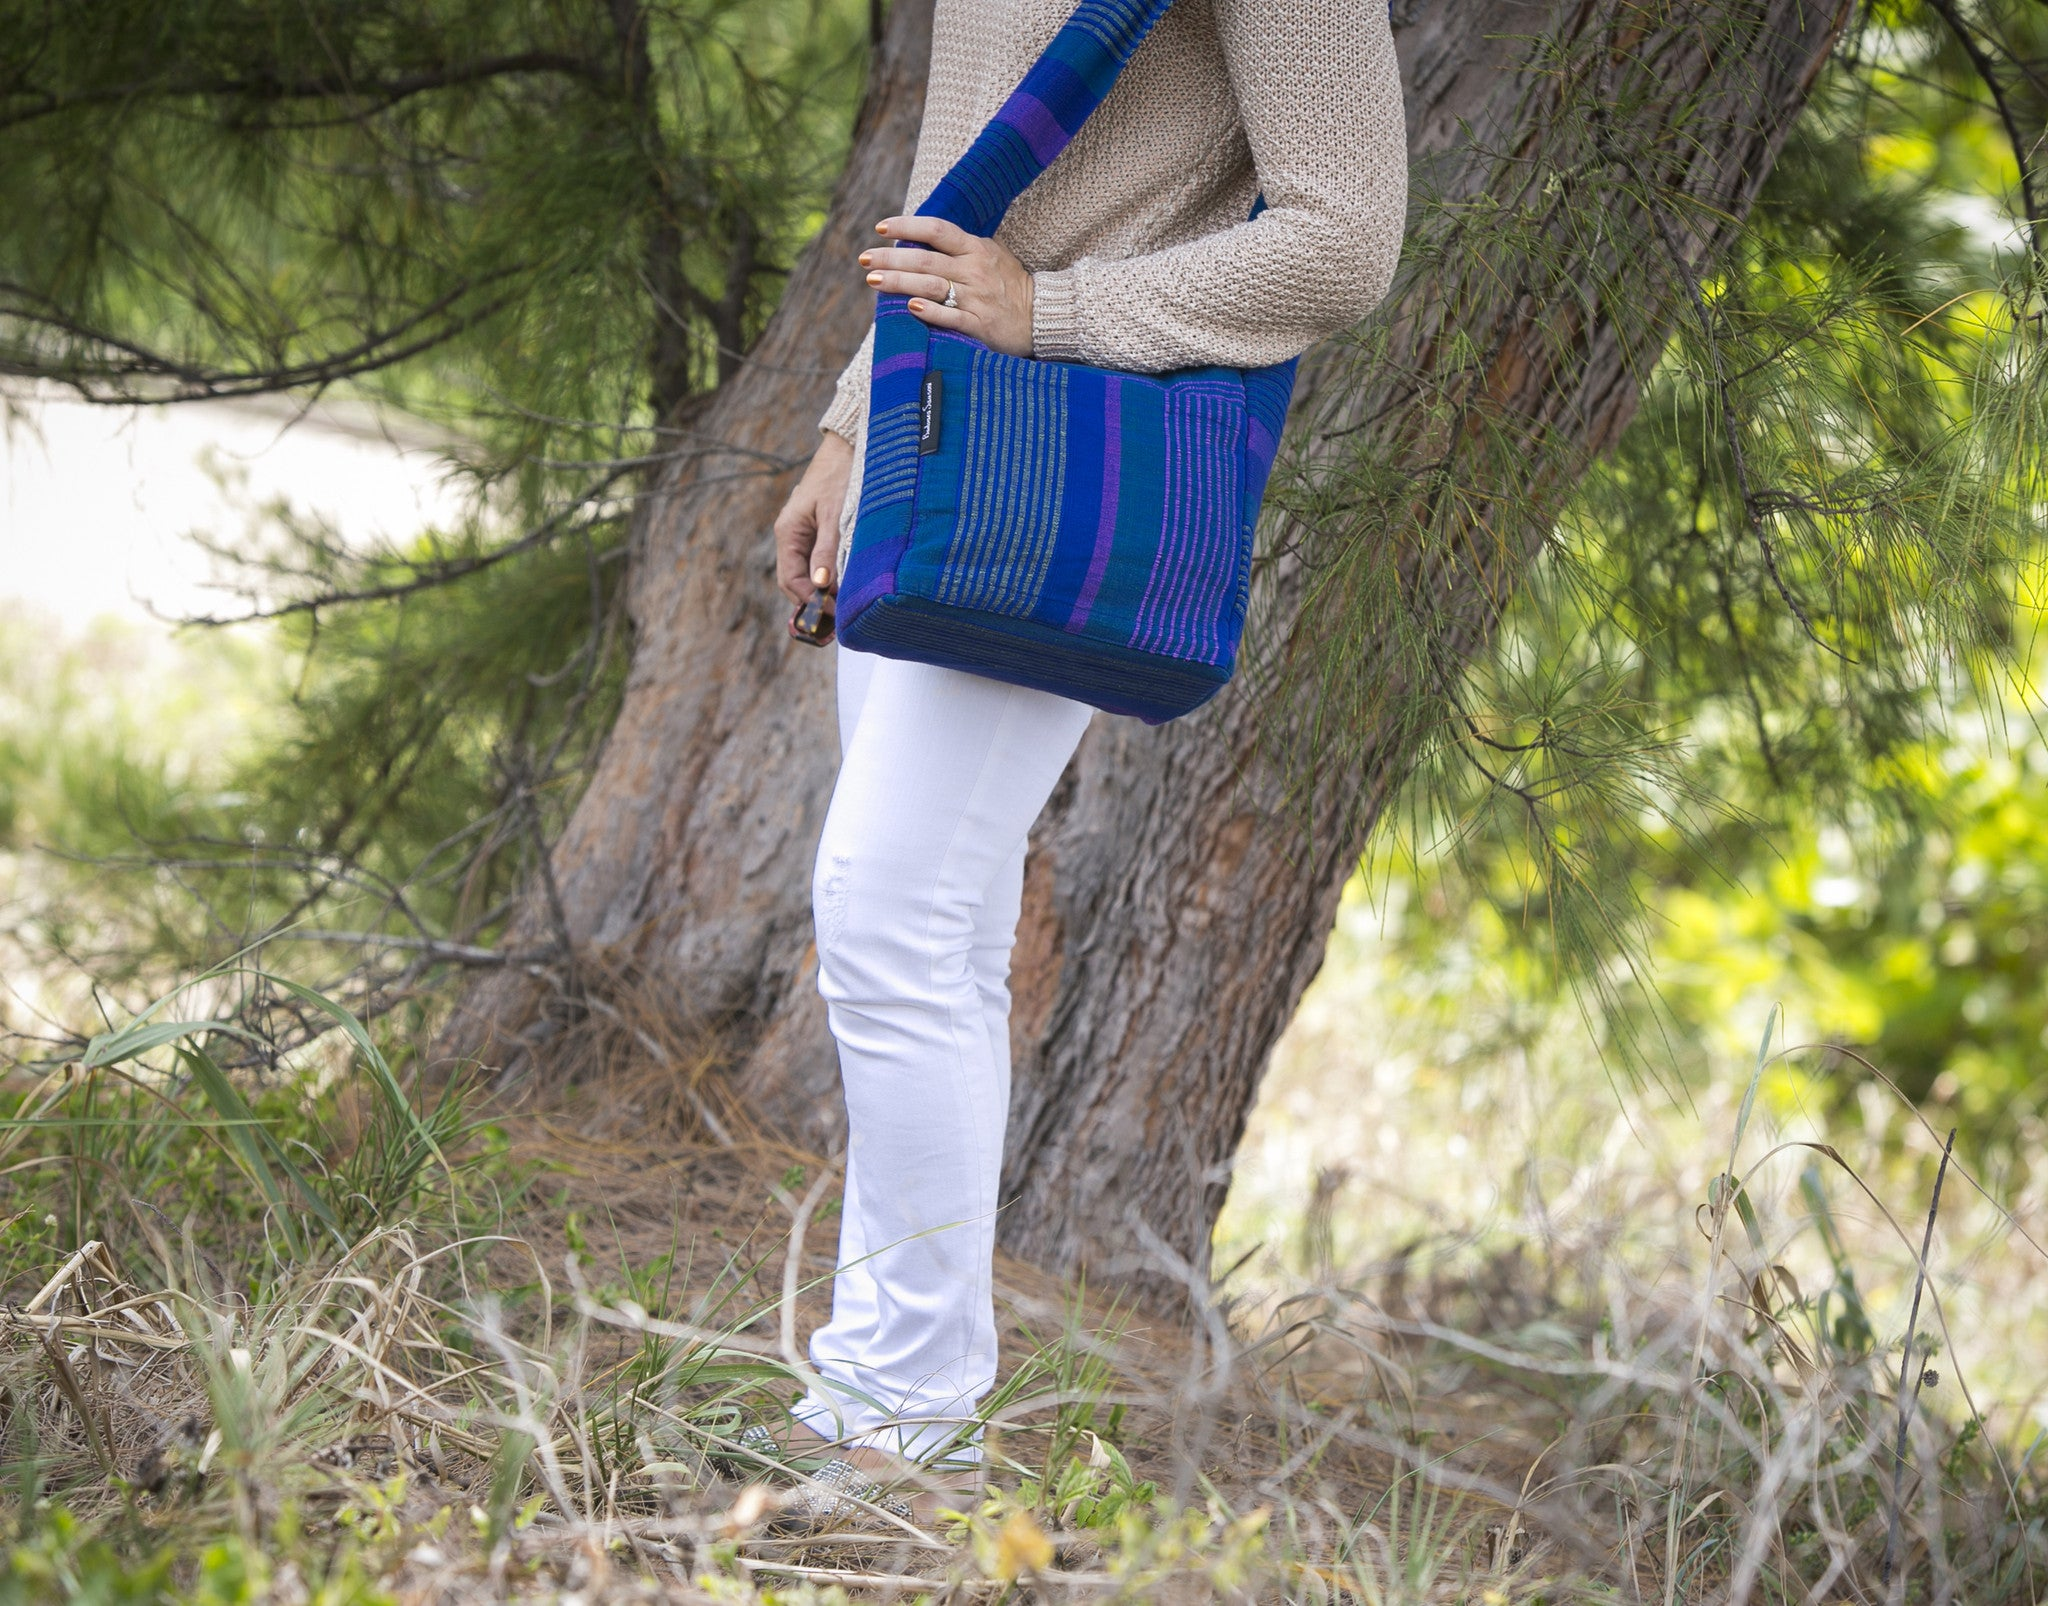 The Versatile Shoulder Bag - Great to carry as a handbag! (Dreamcatcher fabric shown in medium size)